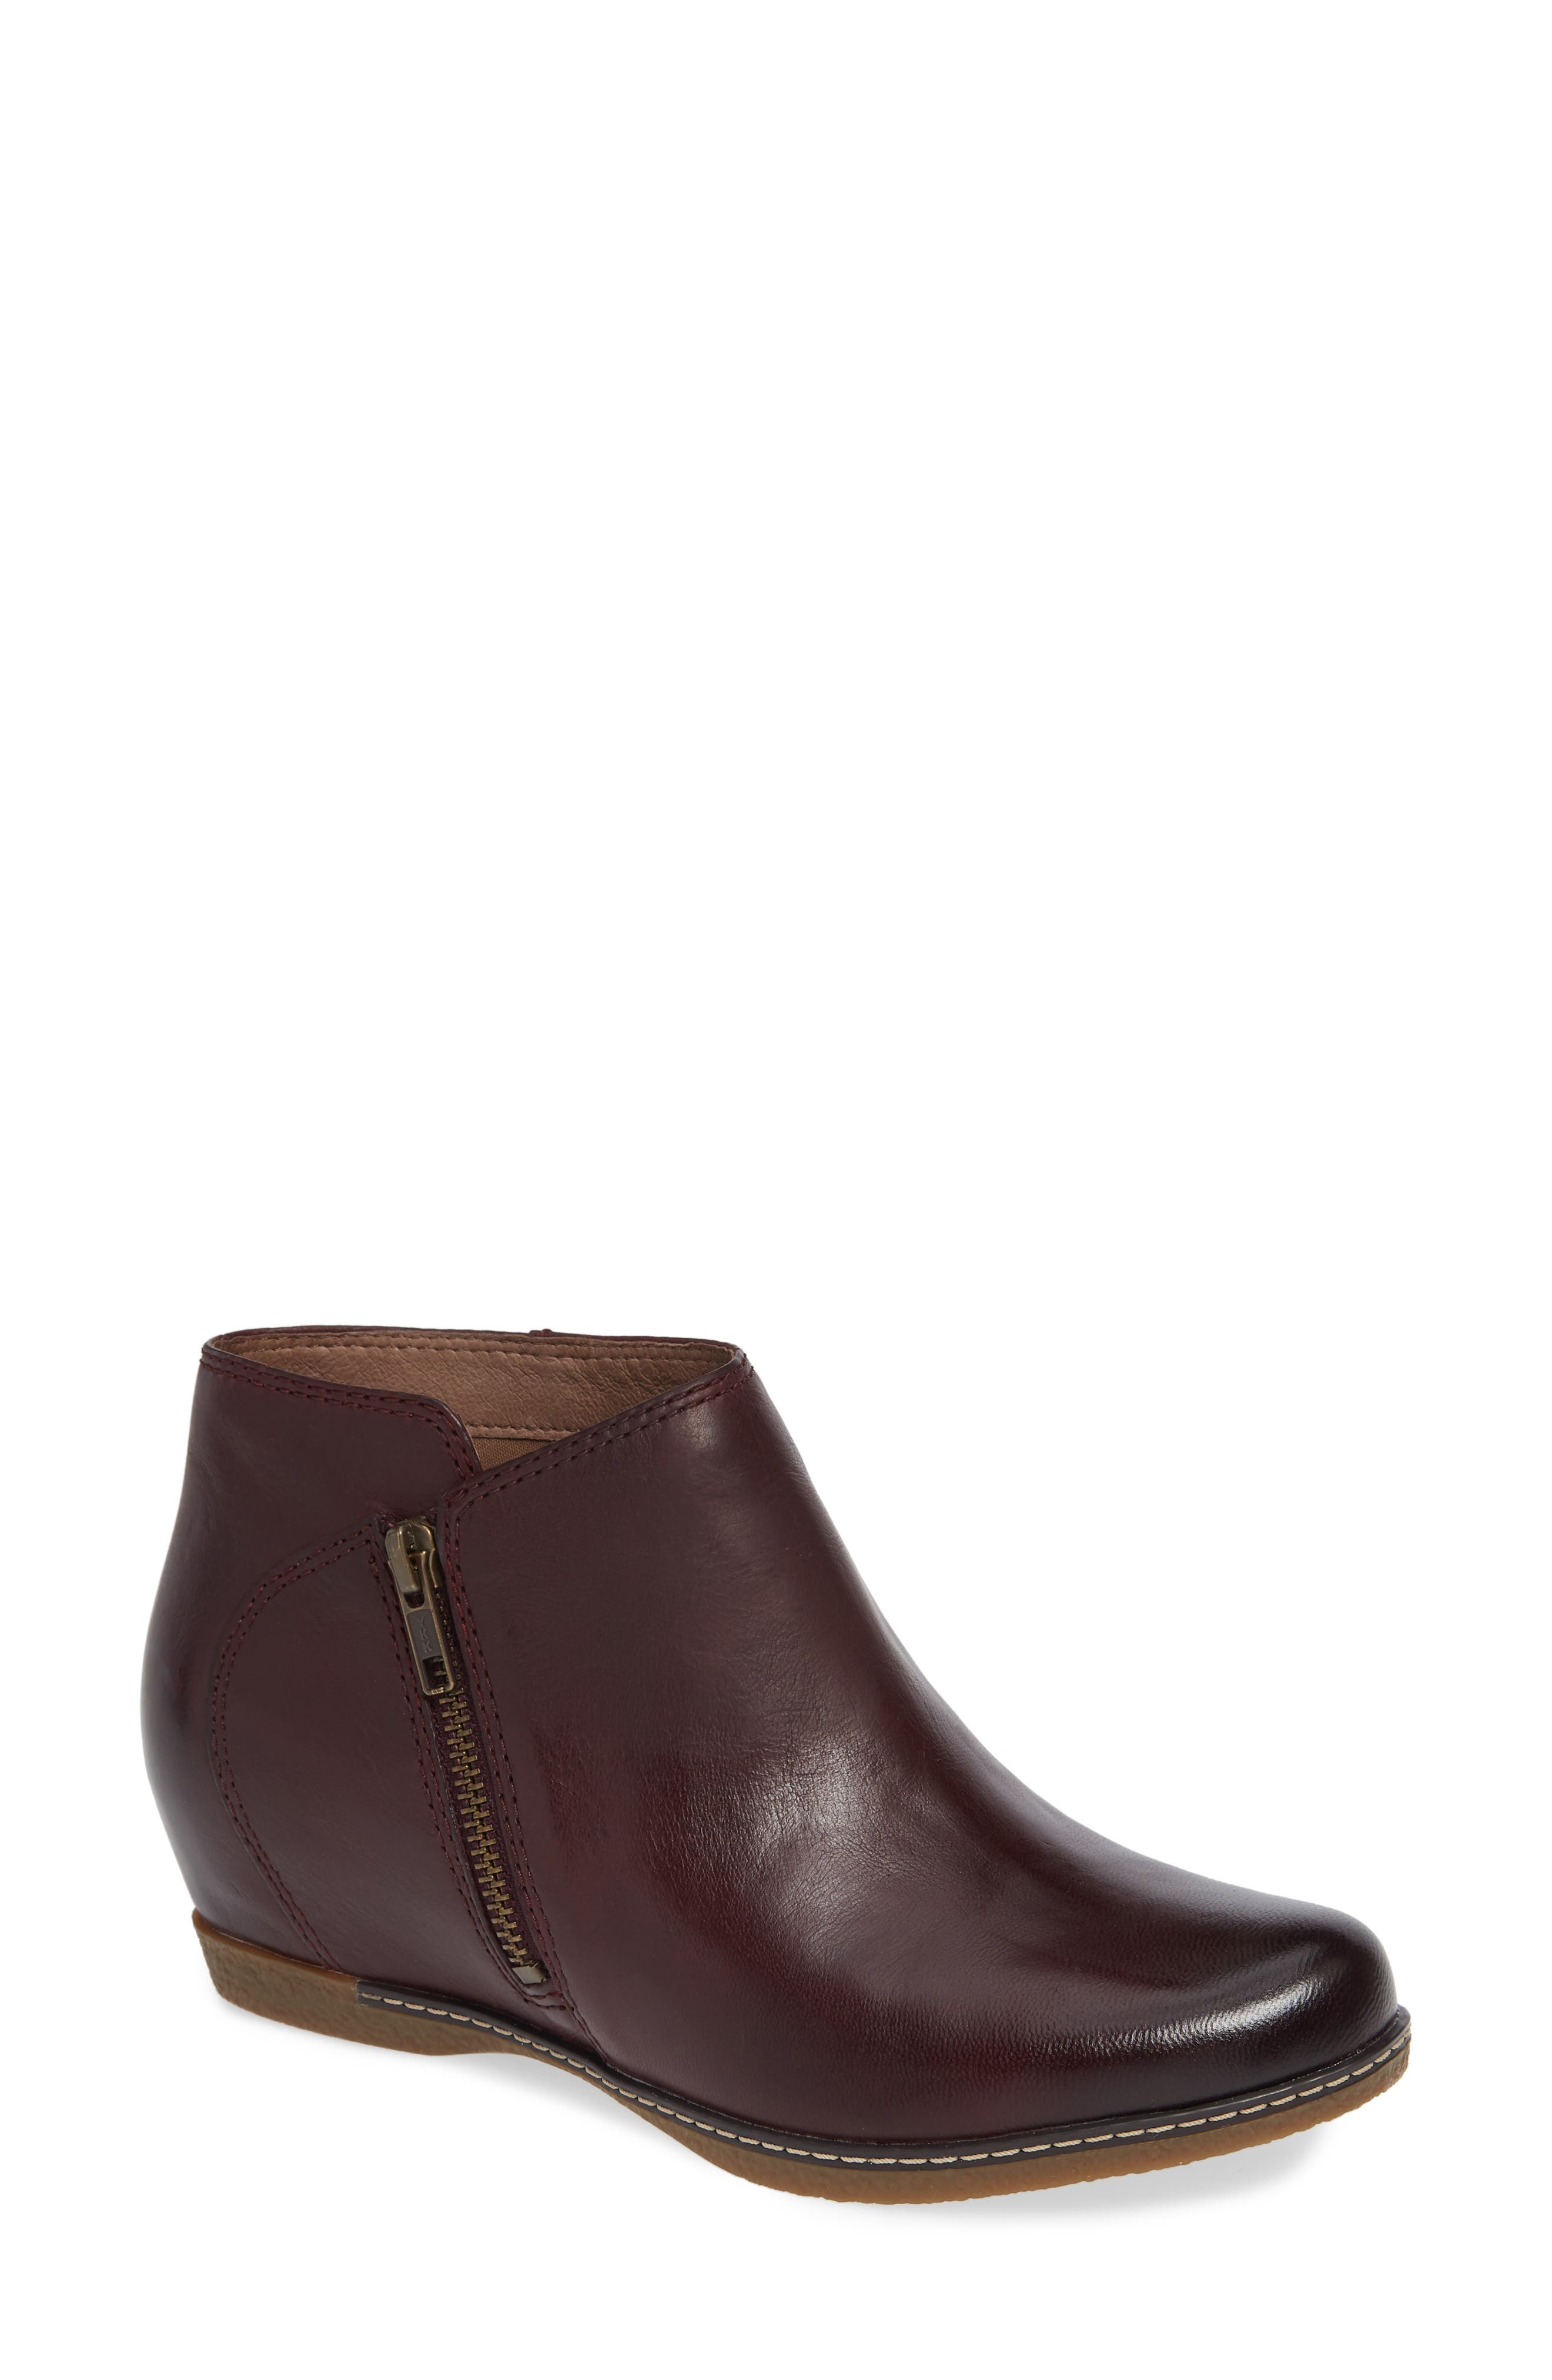 Leyla Bootie,                         Main,                         color, WINE BURNISHED LEATHER